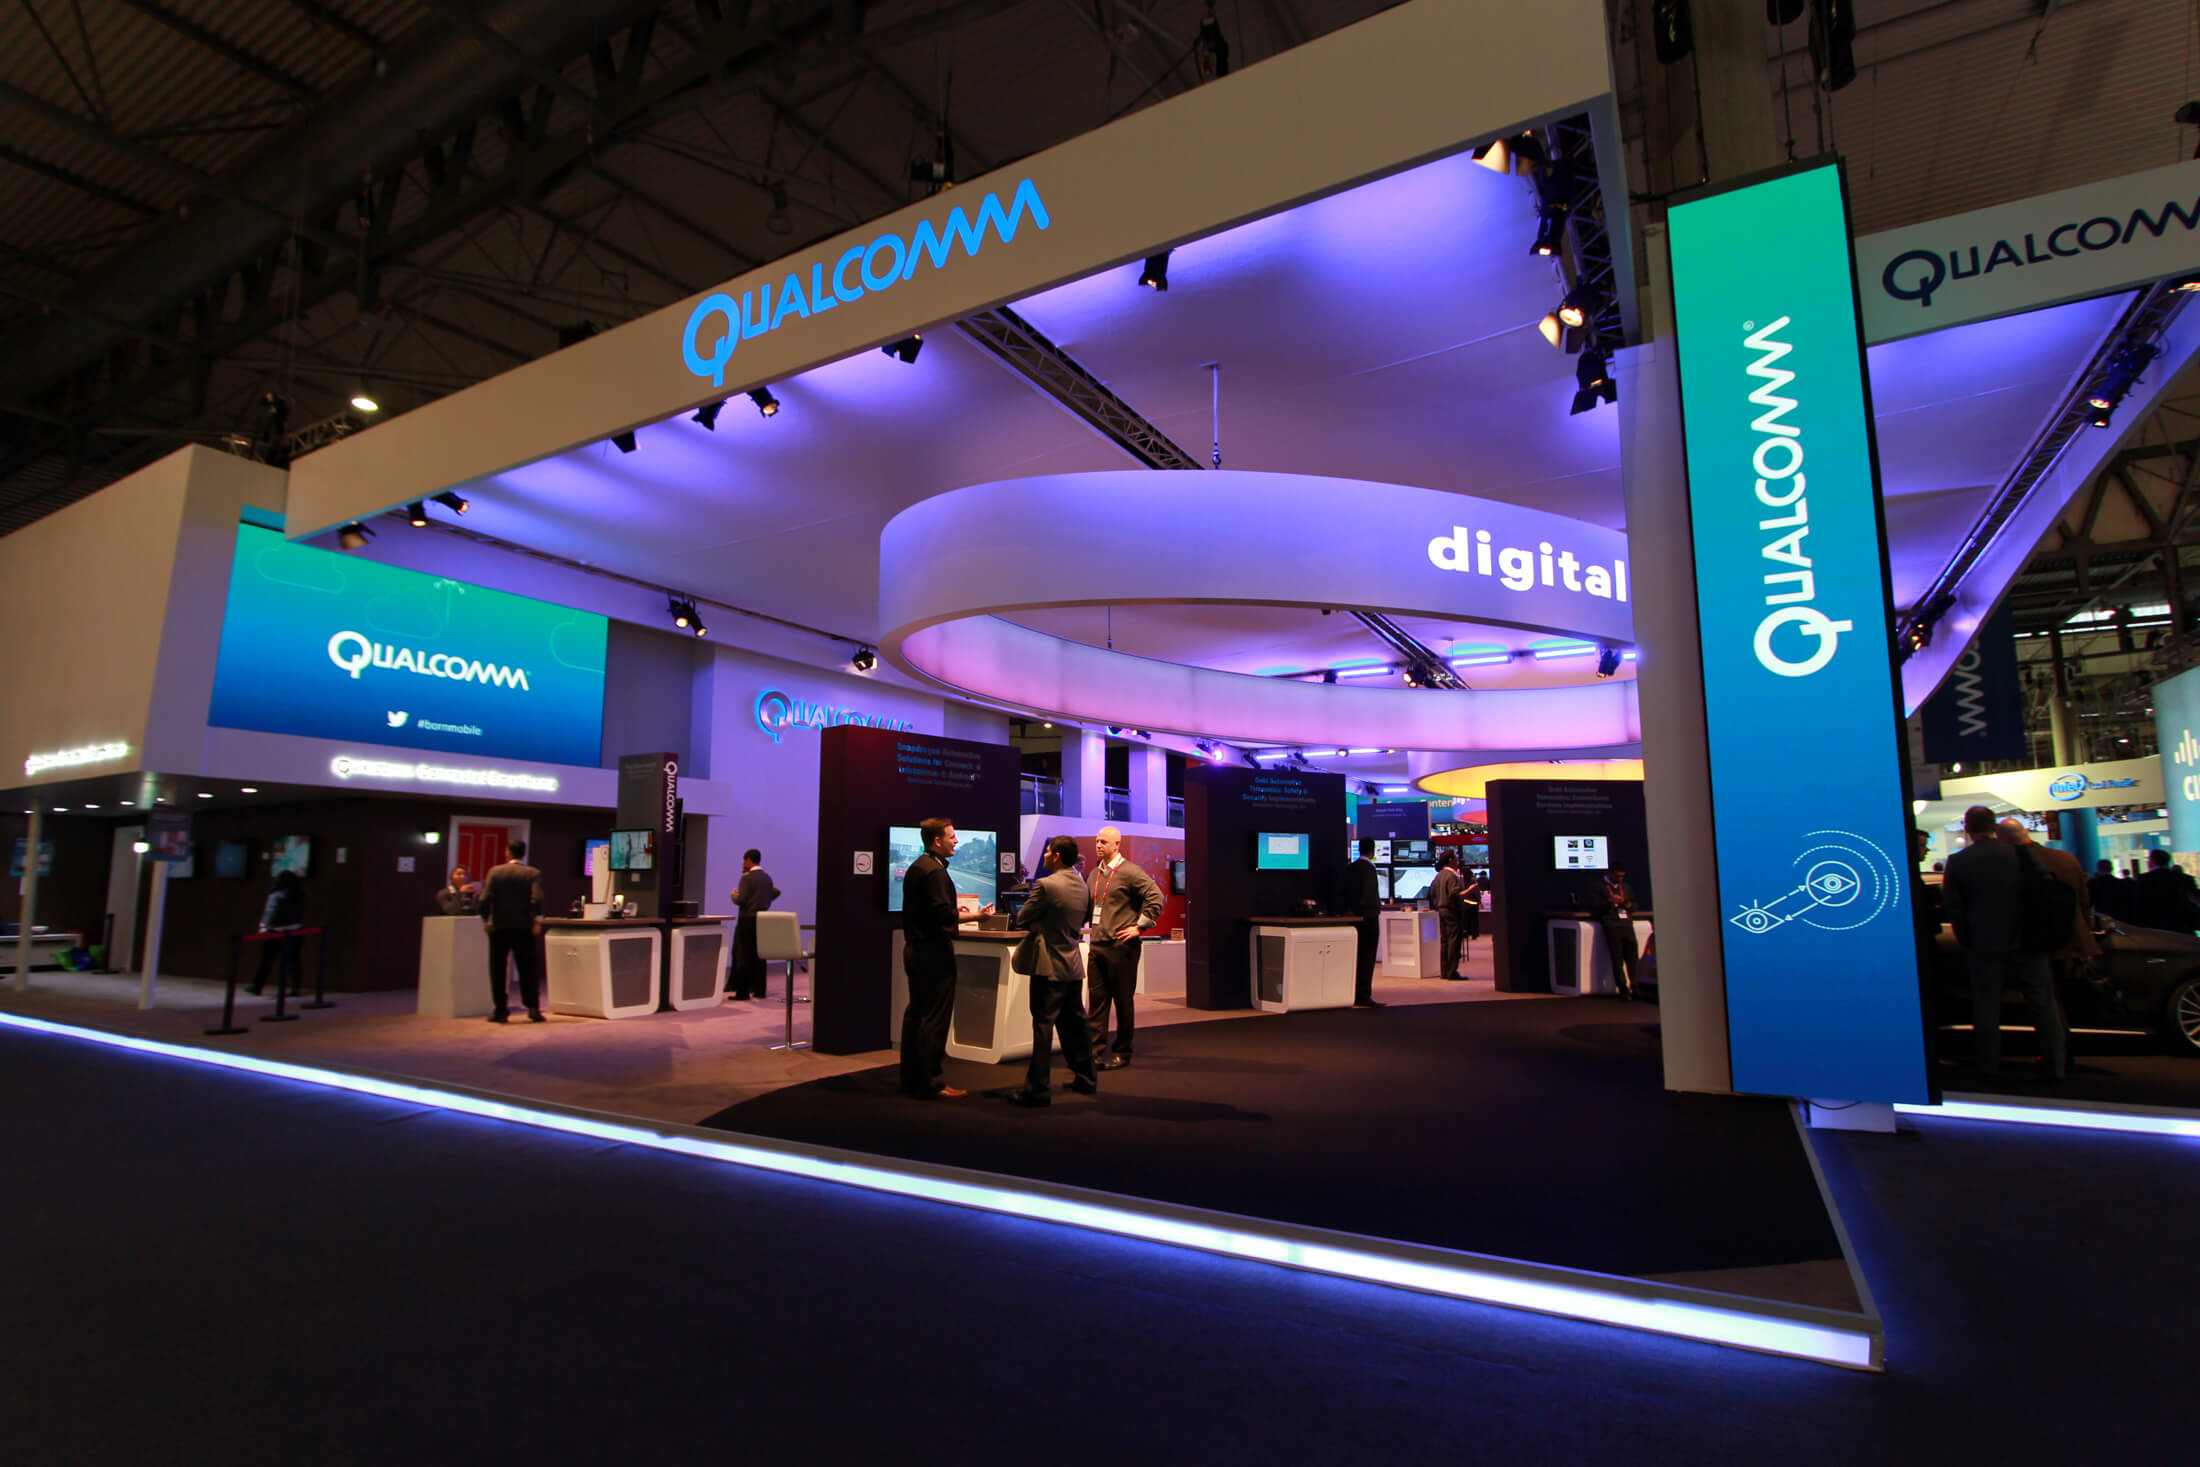 PPL Event Services Ltd Qualcomm Exhibition Stand